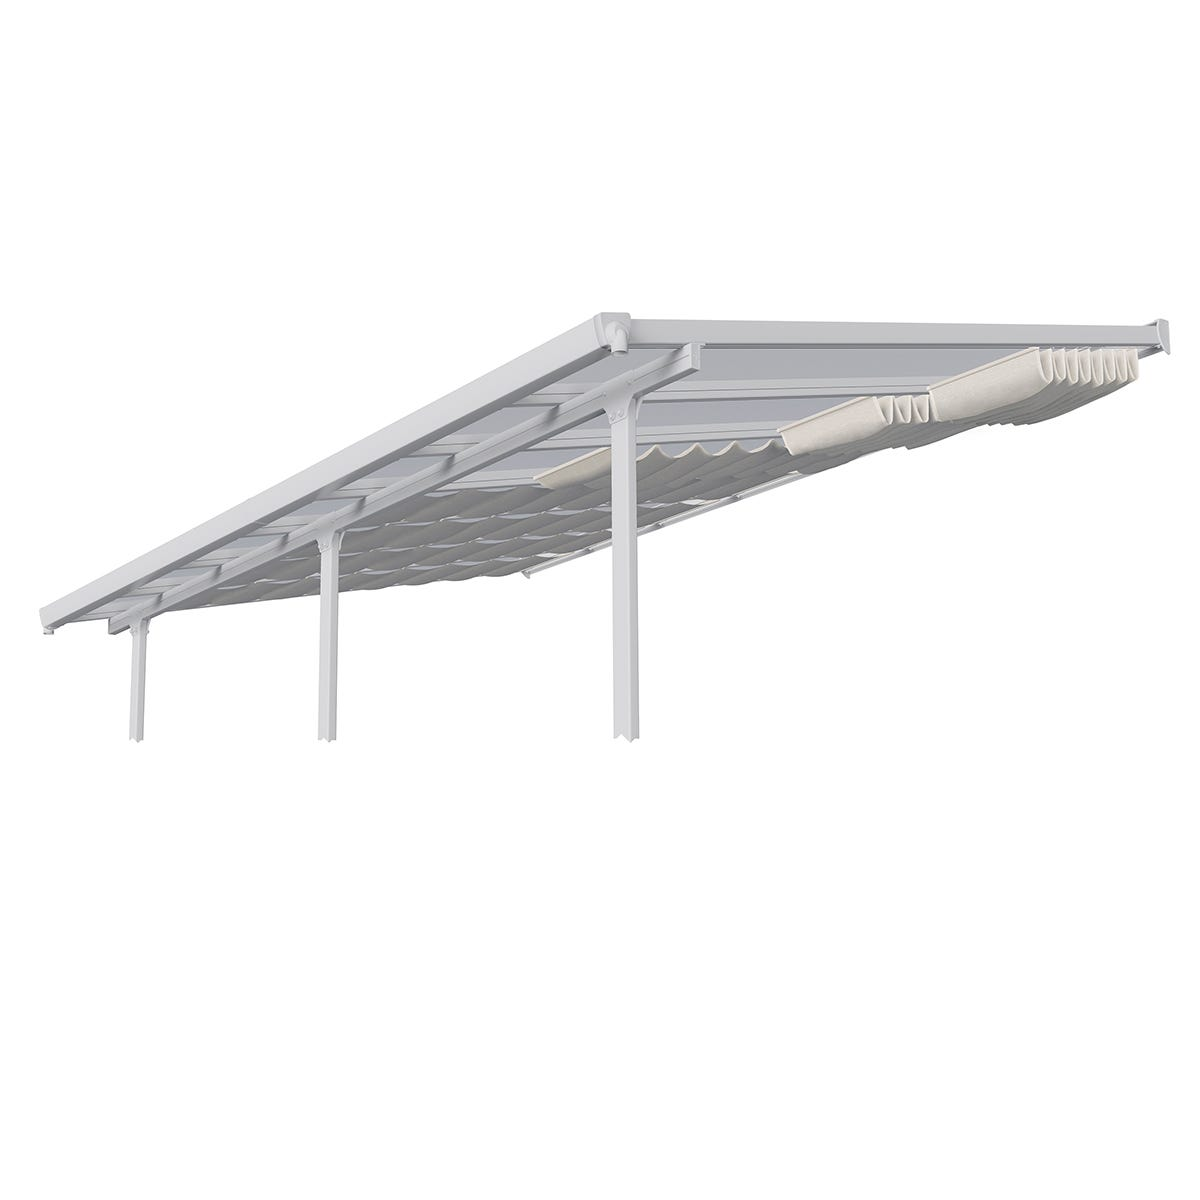 Palram - Canopia Patio Cover Roof Blinds 3m x 4.25m - White